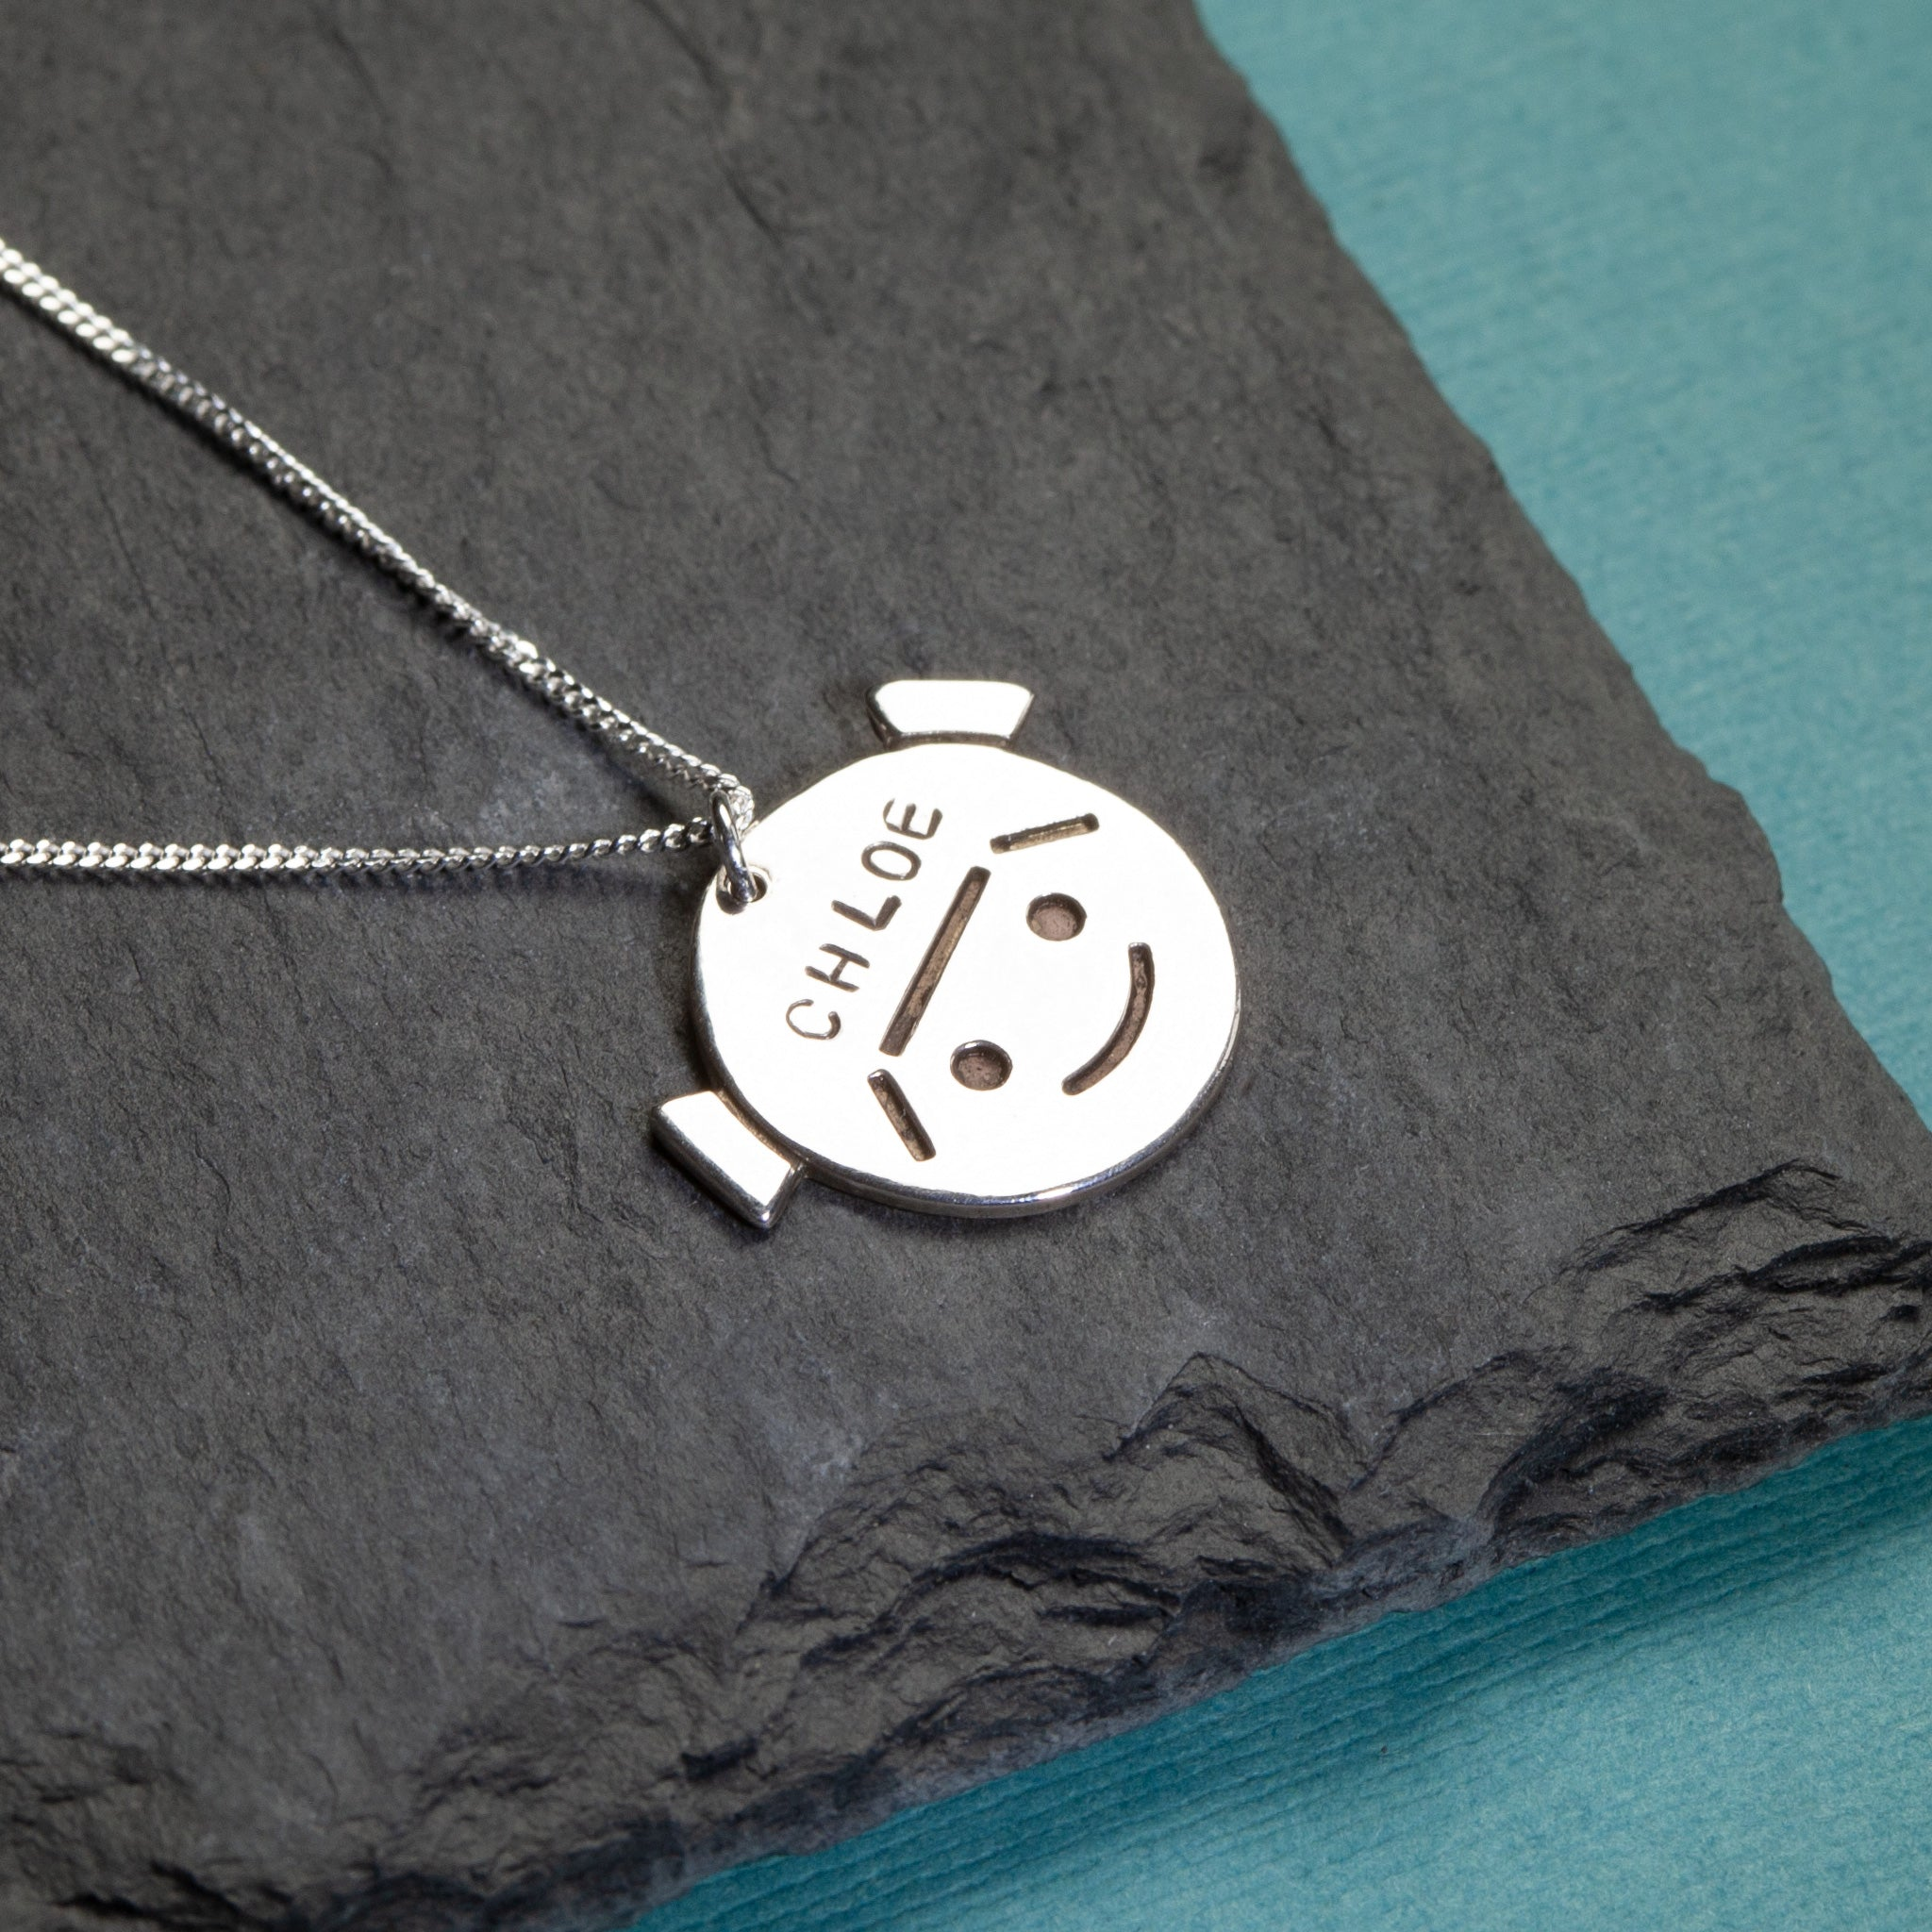 Sterling silver pendant with Kidzcharmz.